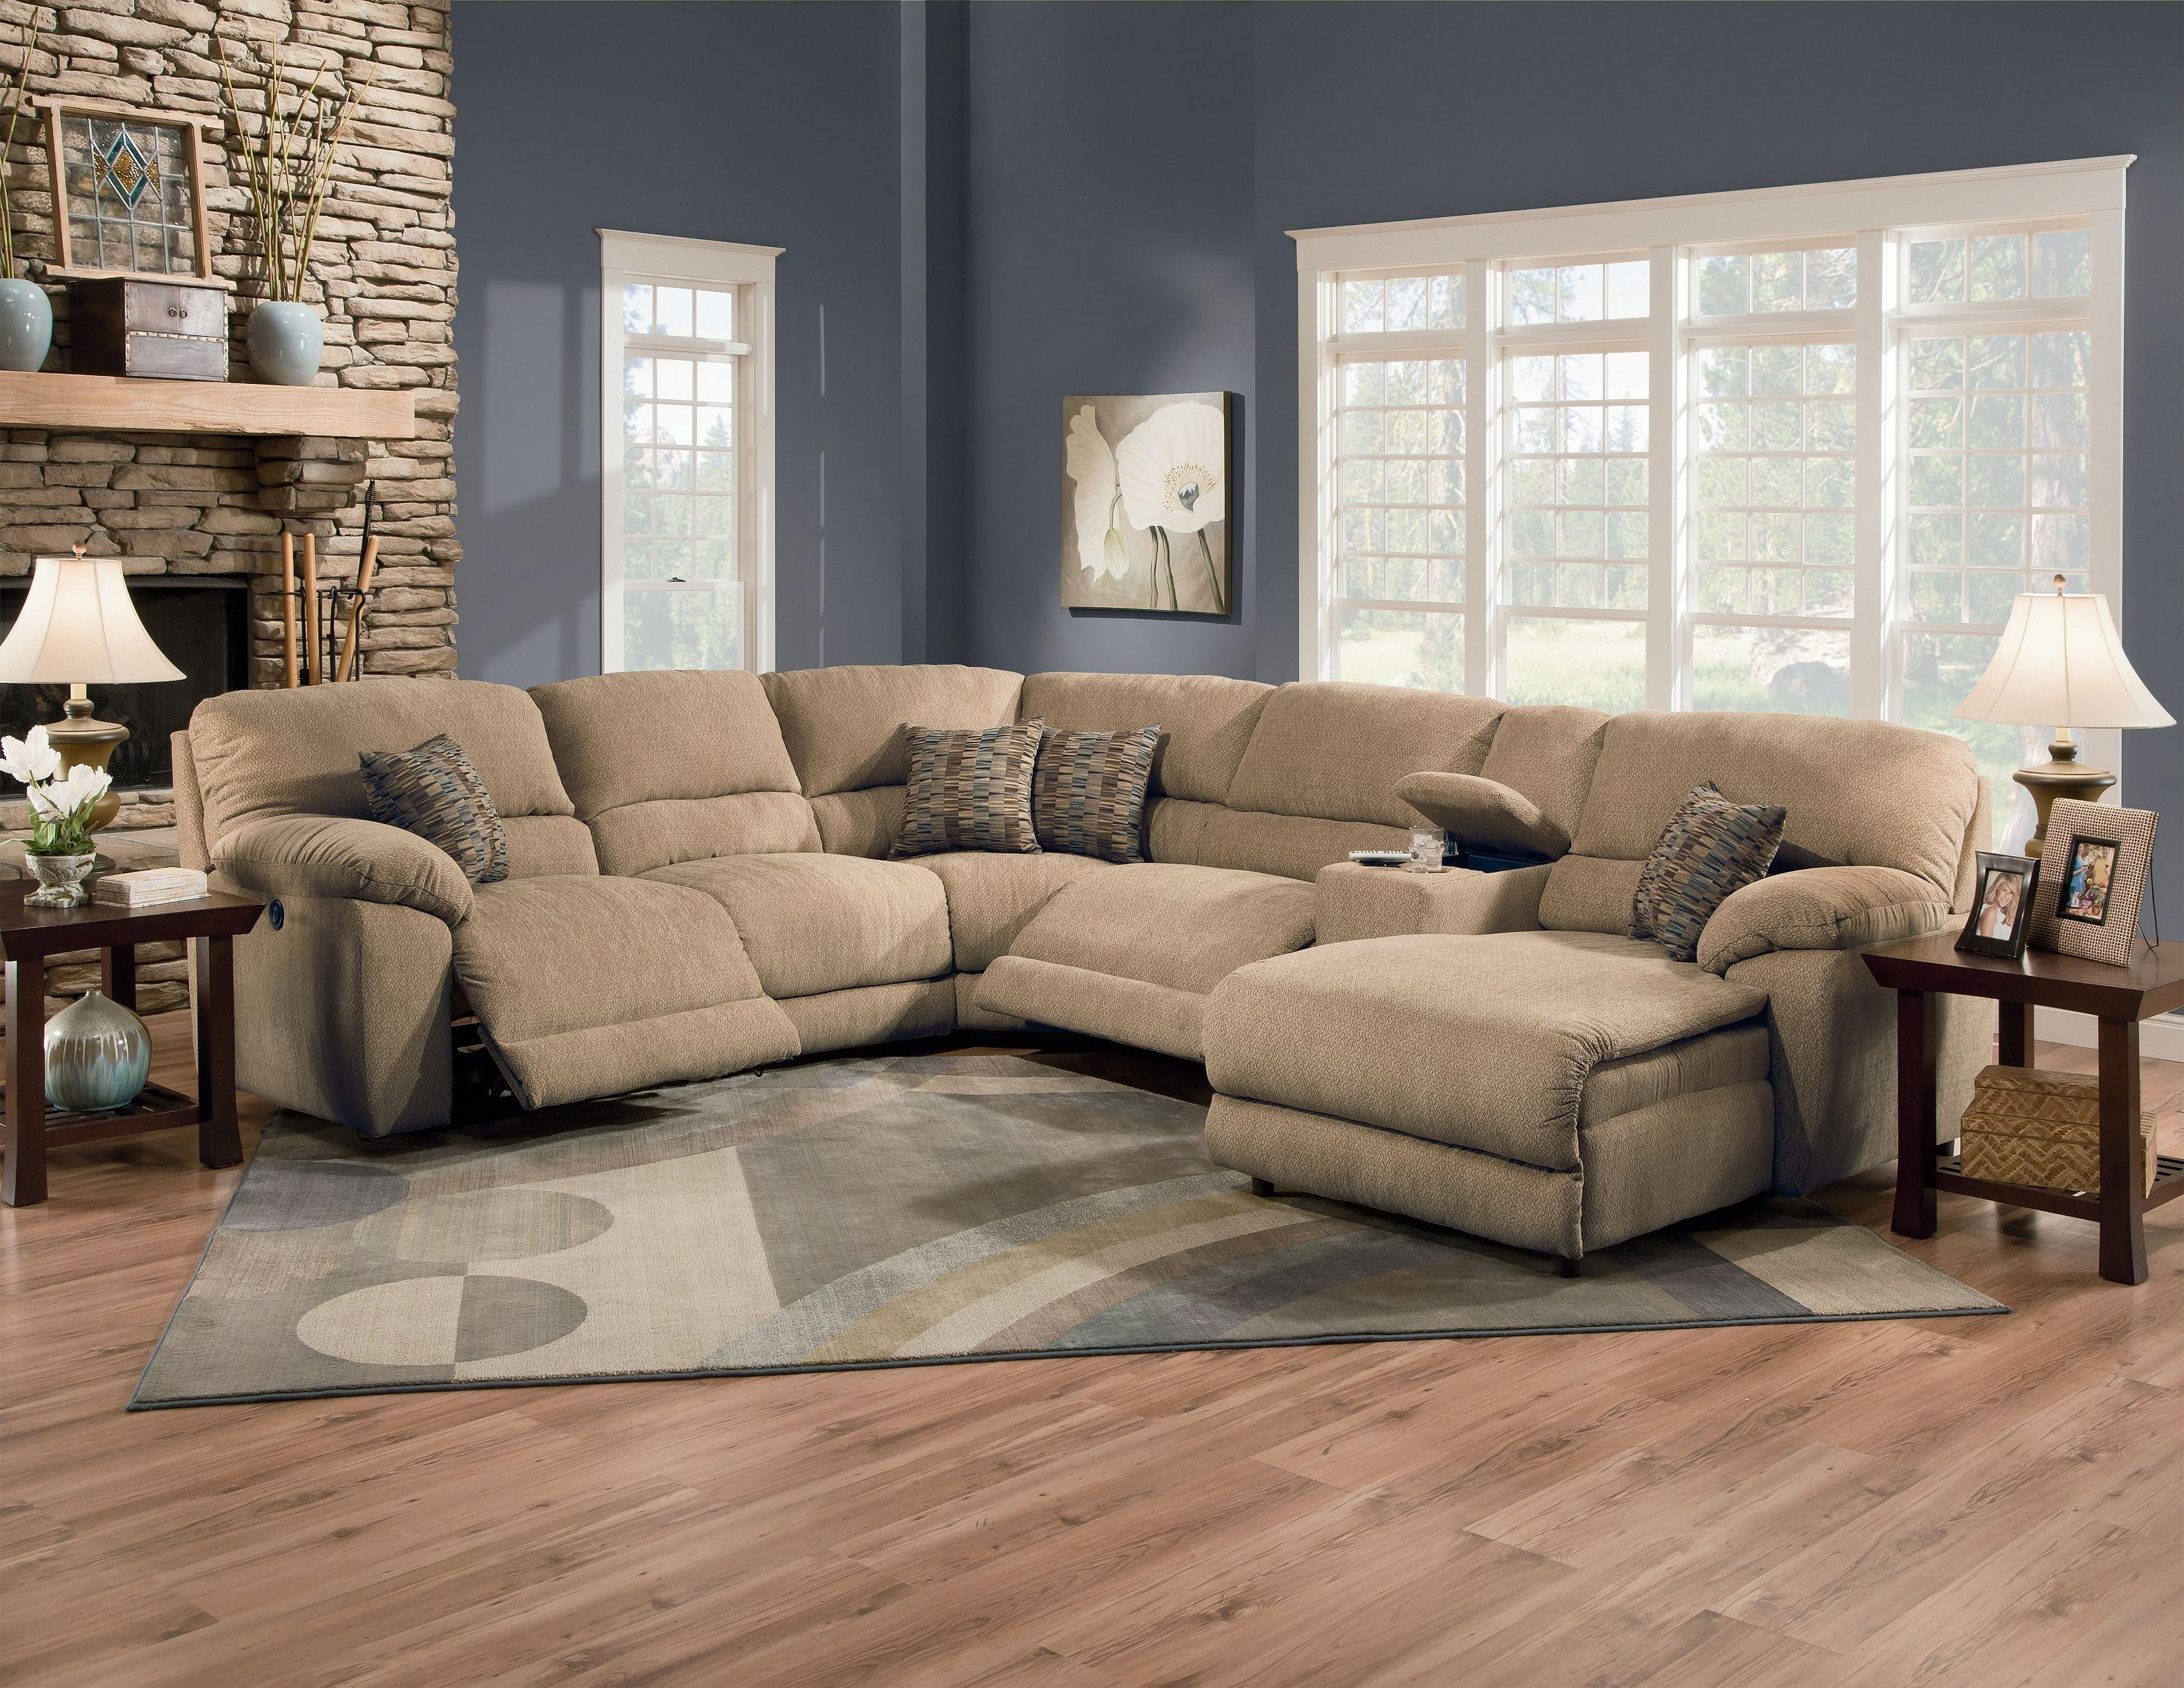 Lane Furniture: Rivers Collection Featuring Power Reclining Intended For Well Known Virginia Sectional Sofas (View 13 of 20)